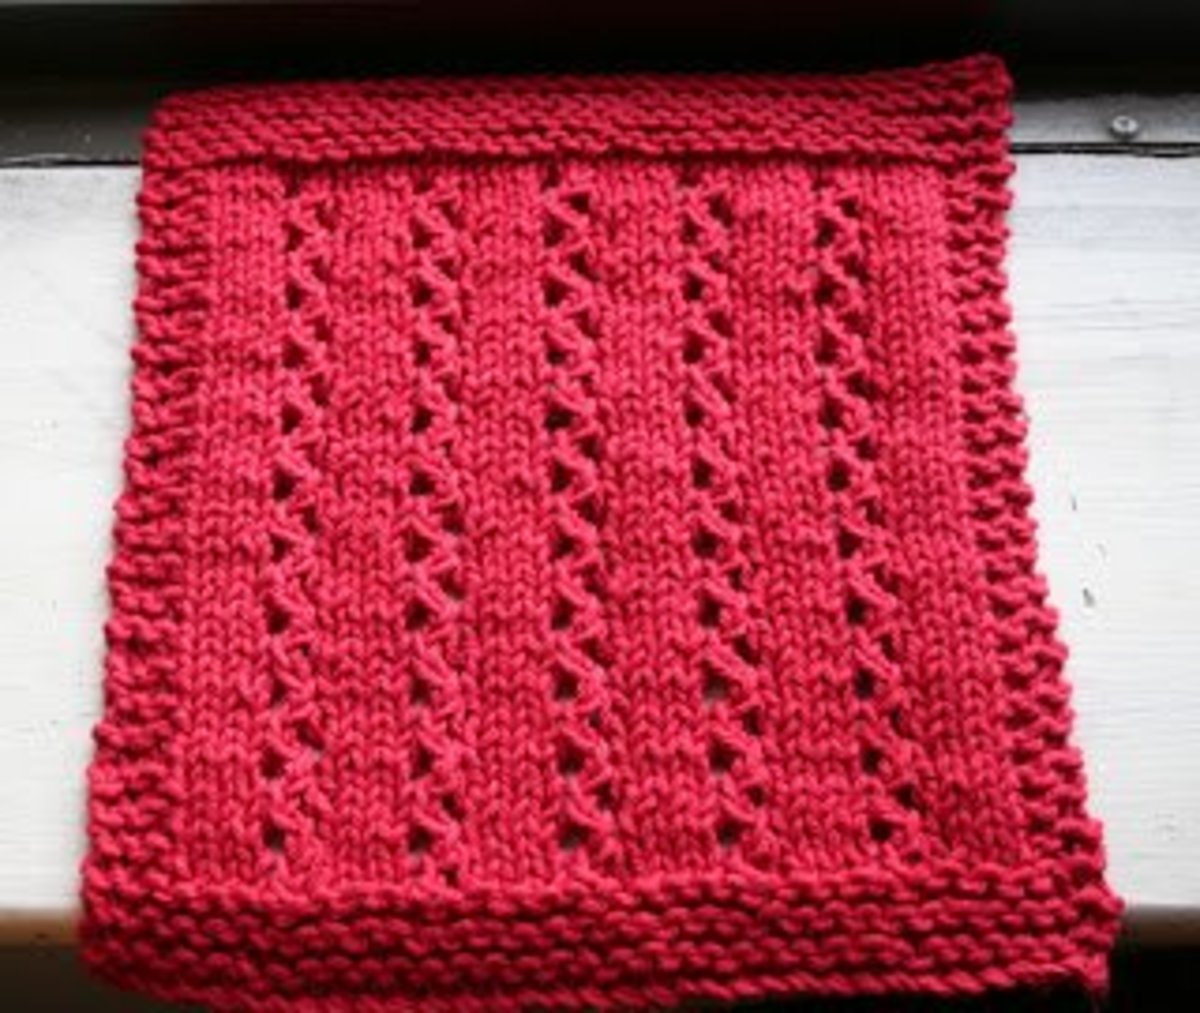 Lace Dishcloth Knitting Pattern : How to Knit Lace - Beginner Knit Scarf FeltMagnet